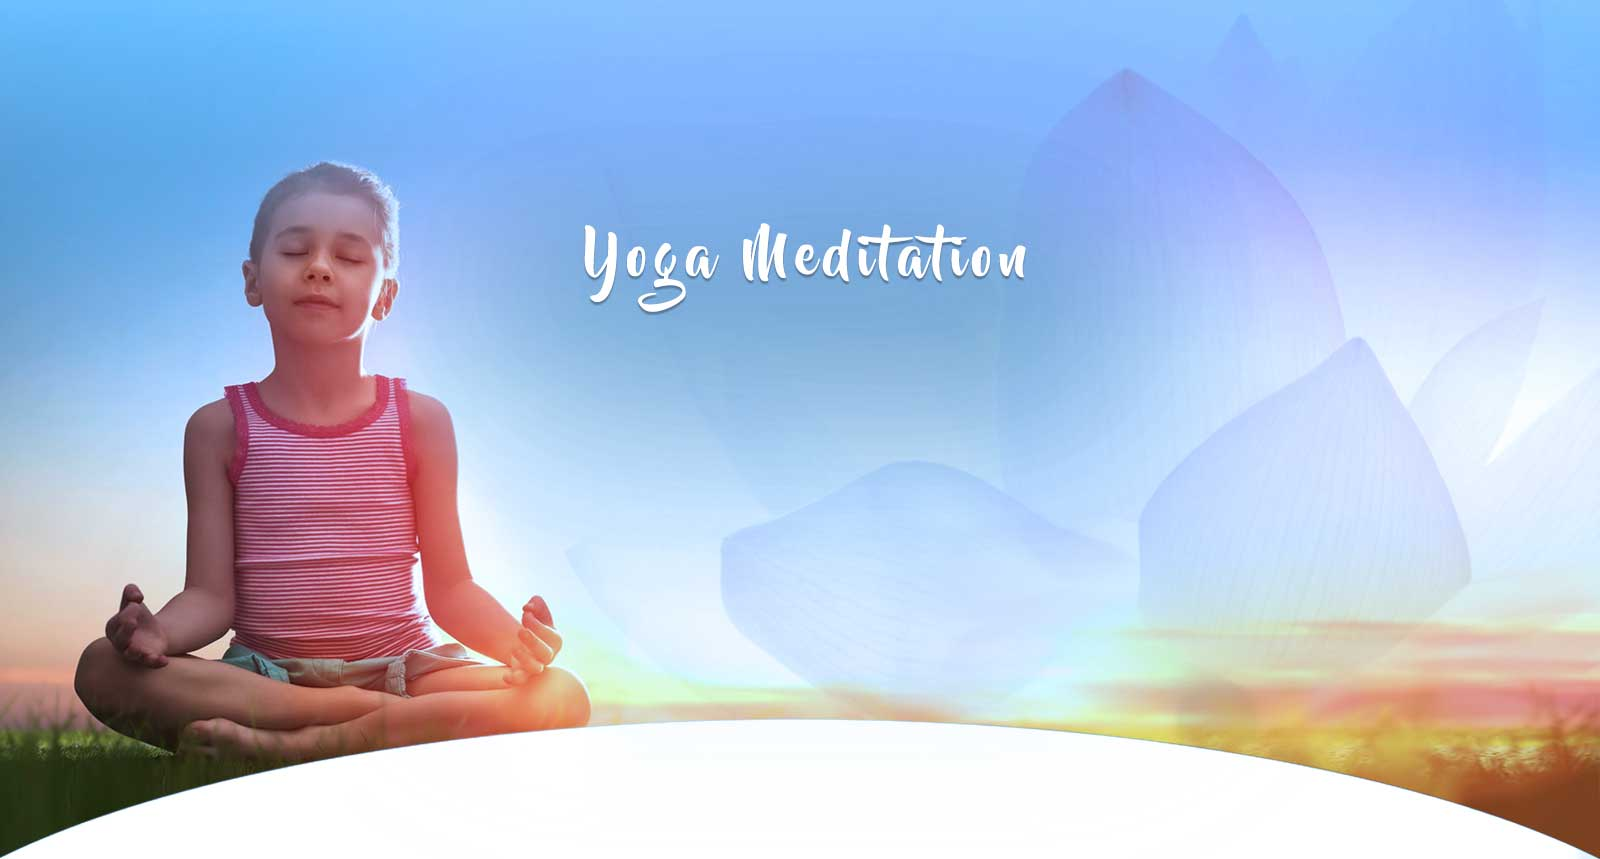 yoga-meditation-centre-kochi-ernakulam-kerala-india